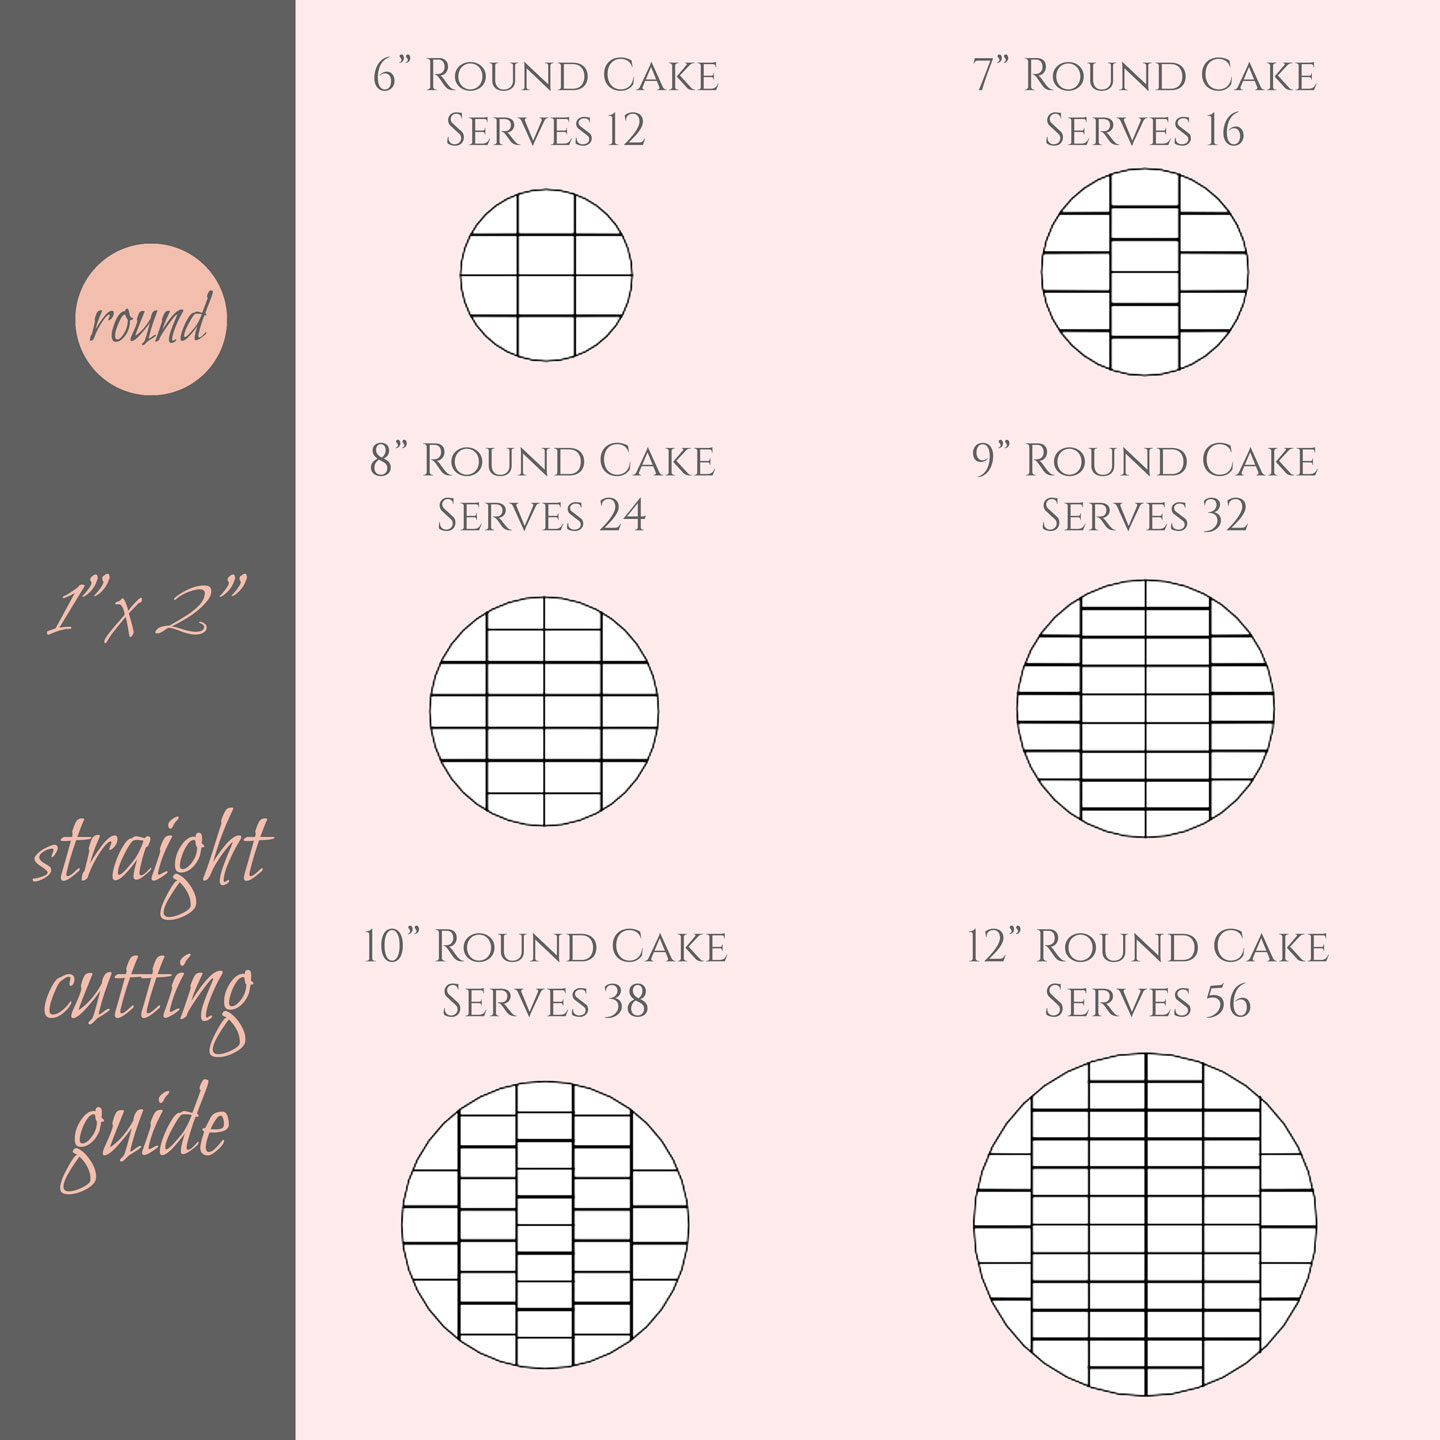 Cake Cutting Guide Round cake dessert portion sizes by Luisas Sweet Creations